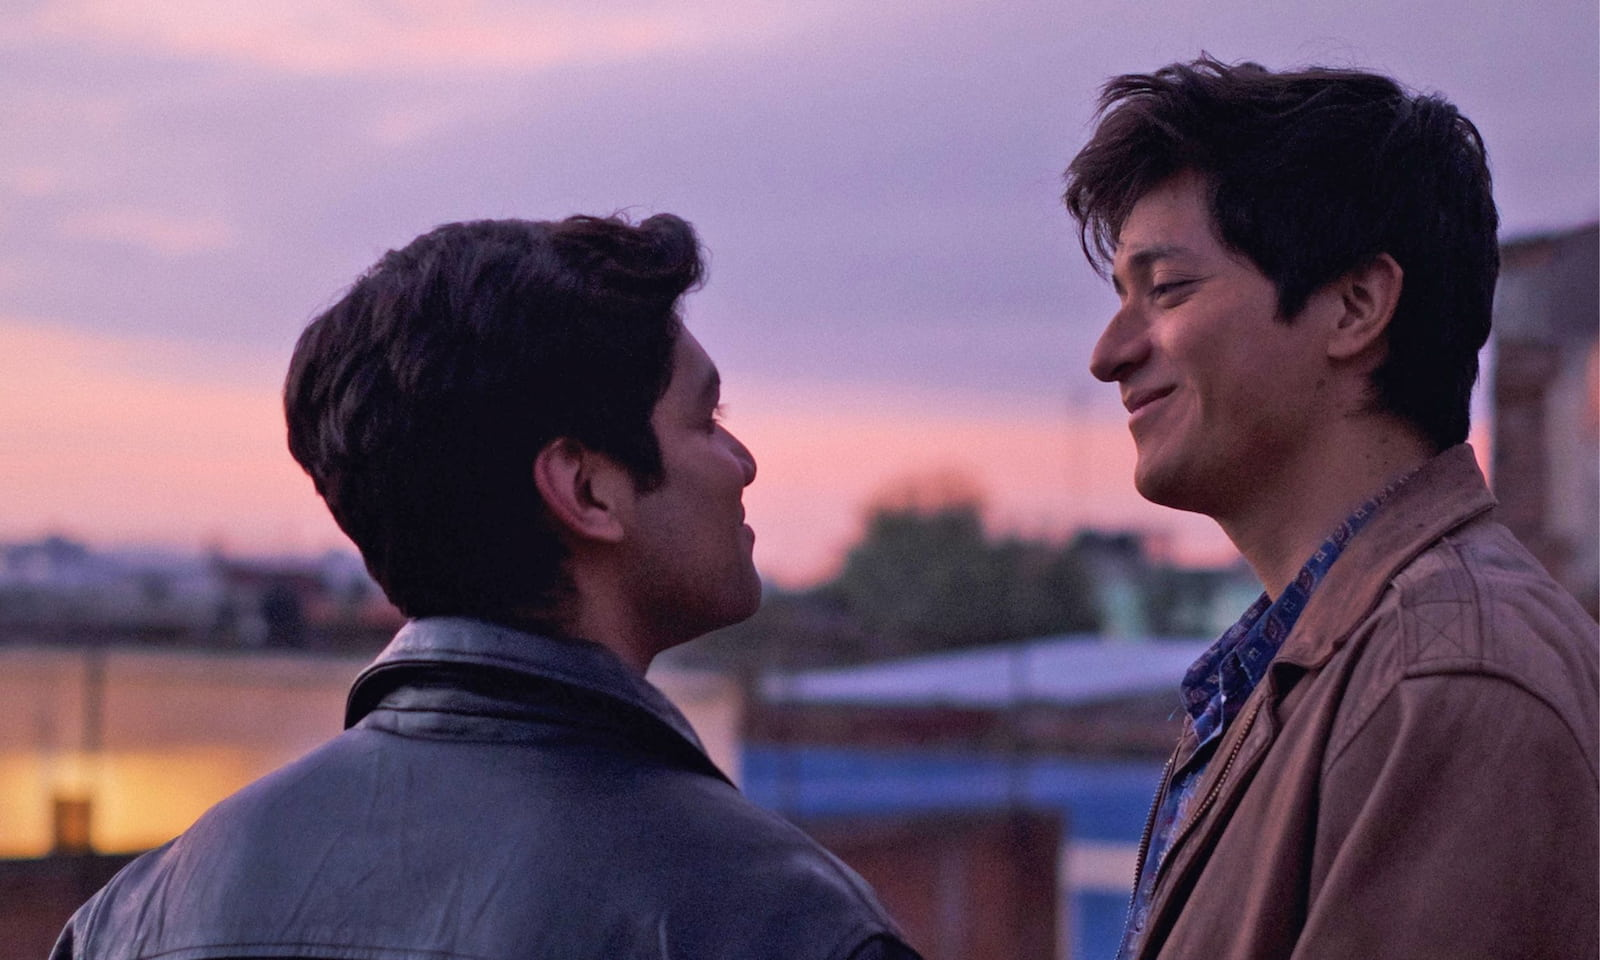 'Te Llevo Conmigo', the Queer Mexican Love Story You Need to Watch